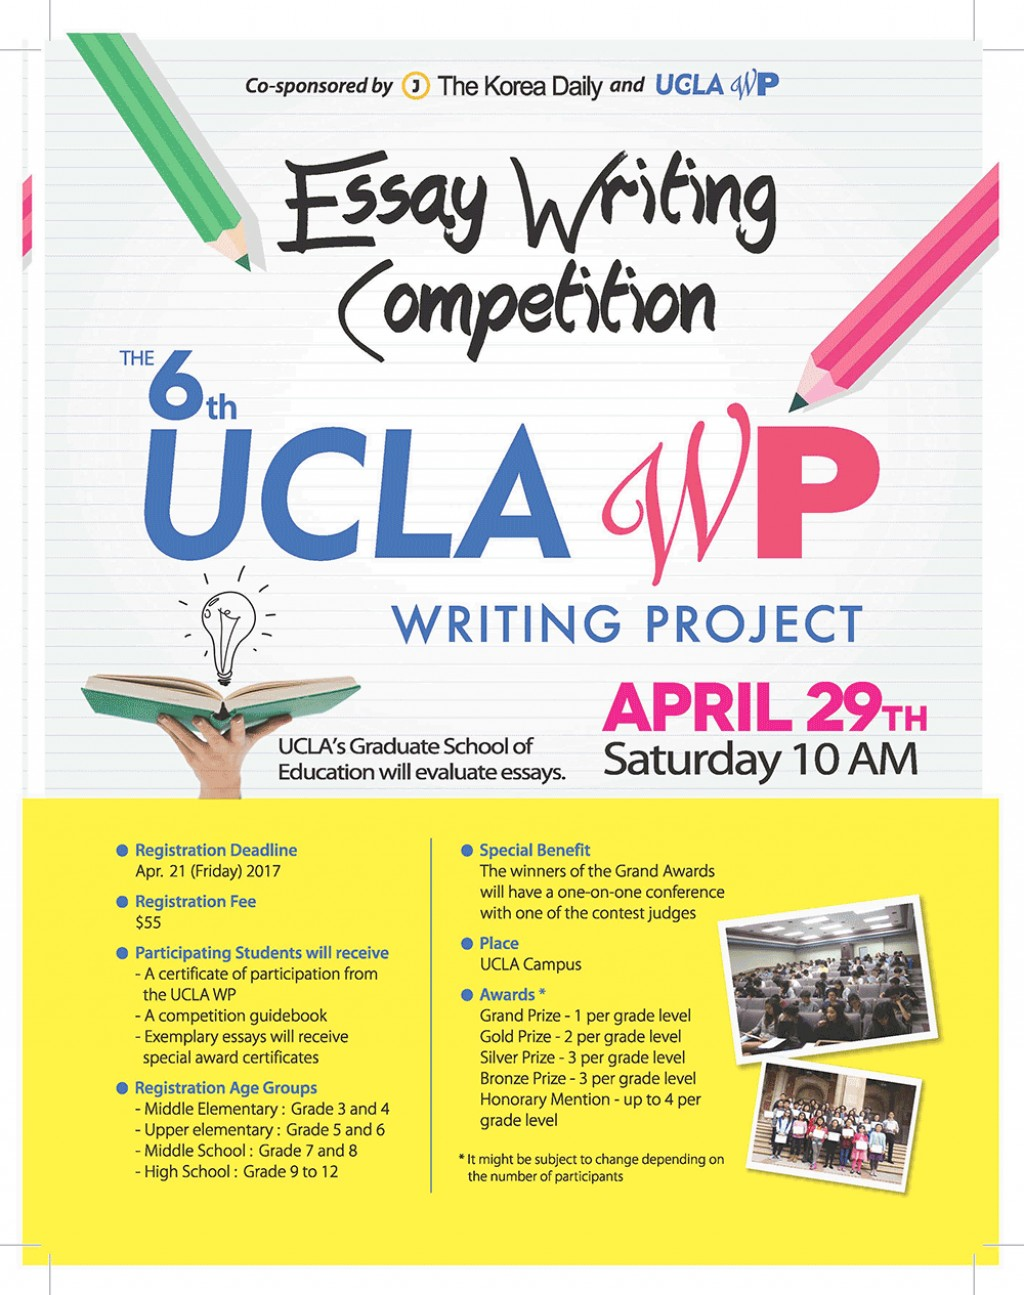 017 Uclakoreandaily Flyer Essay Contest Middle School Breathtaking Competition For Creative Writing Curriculum Online High Students Large